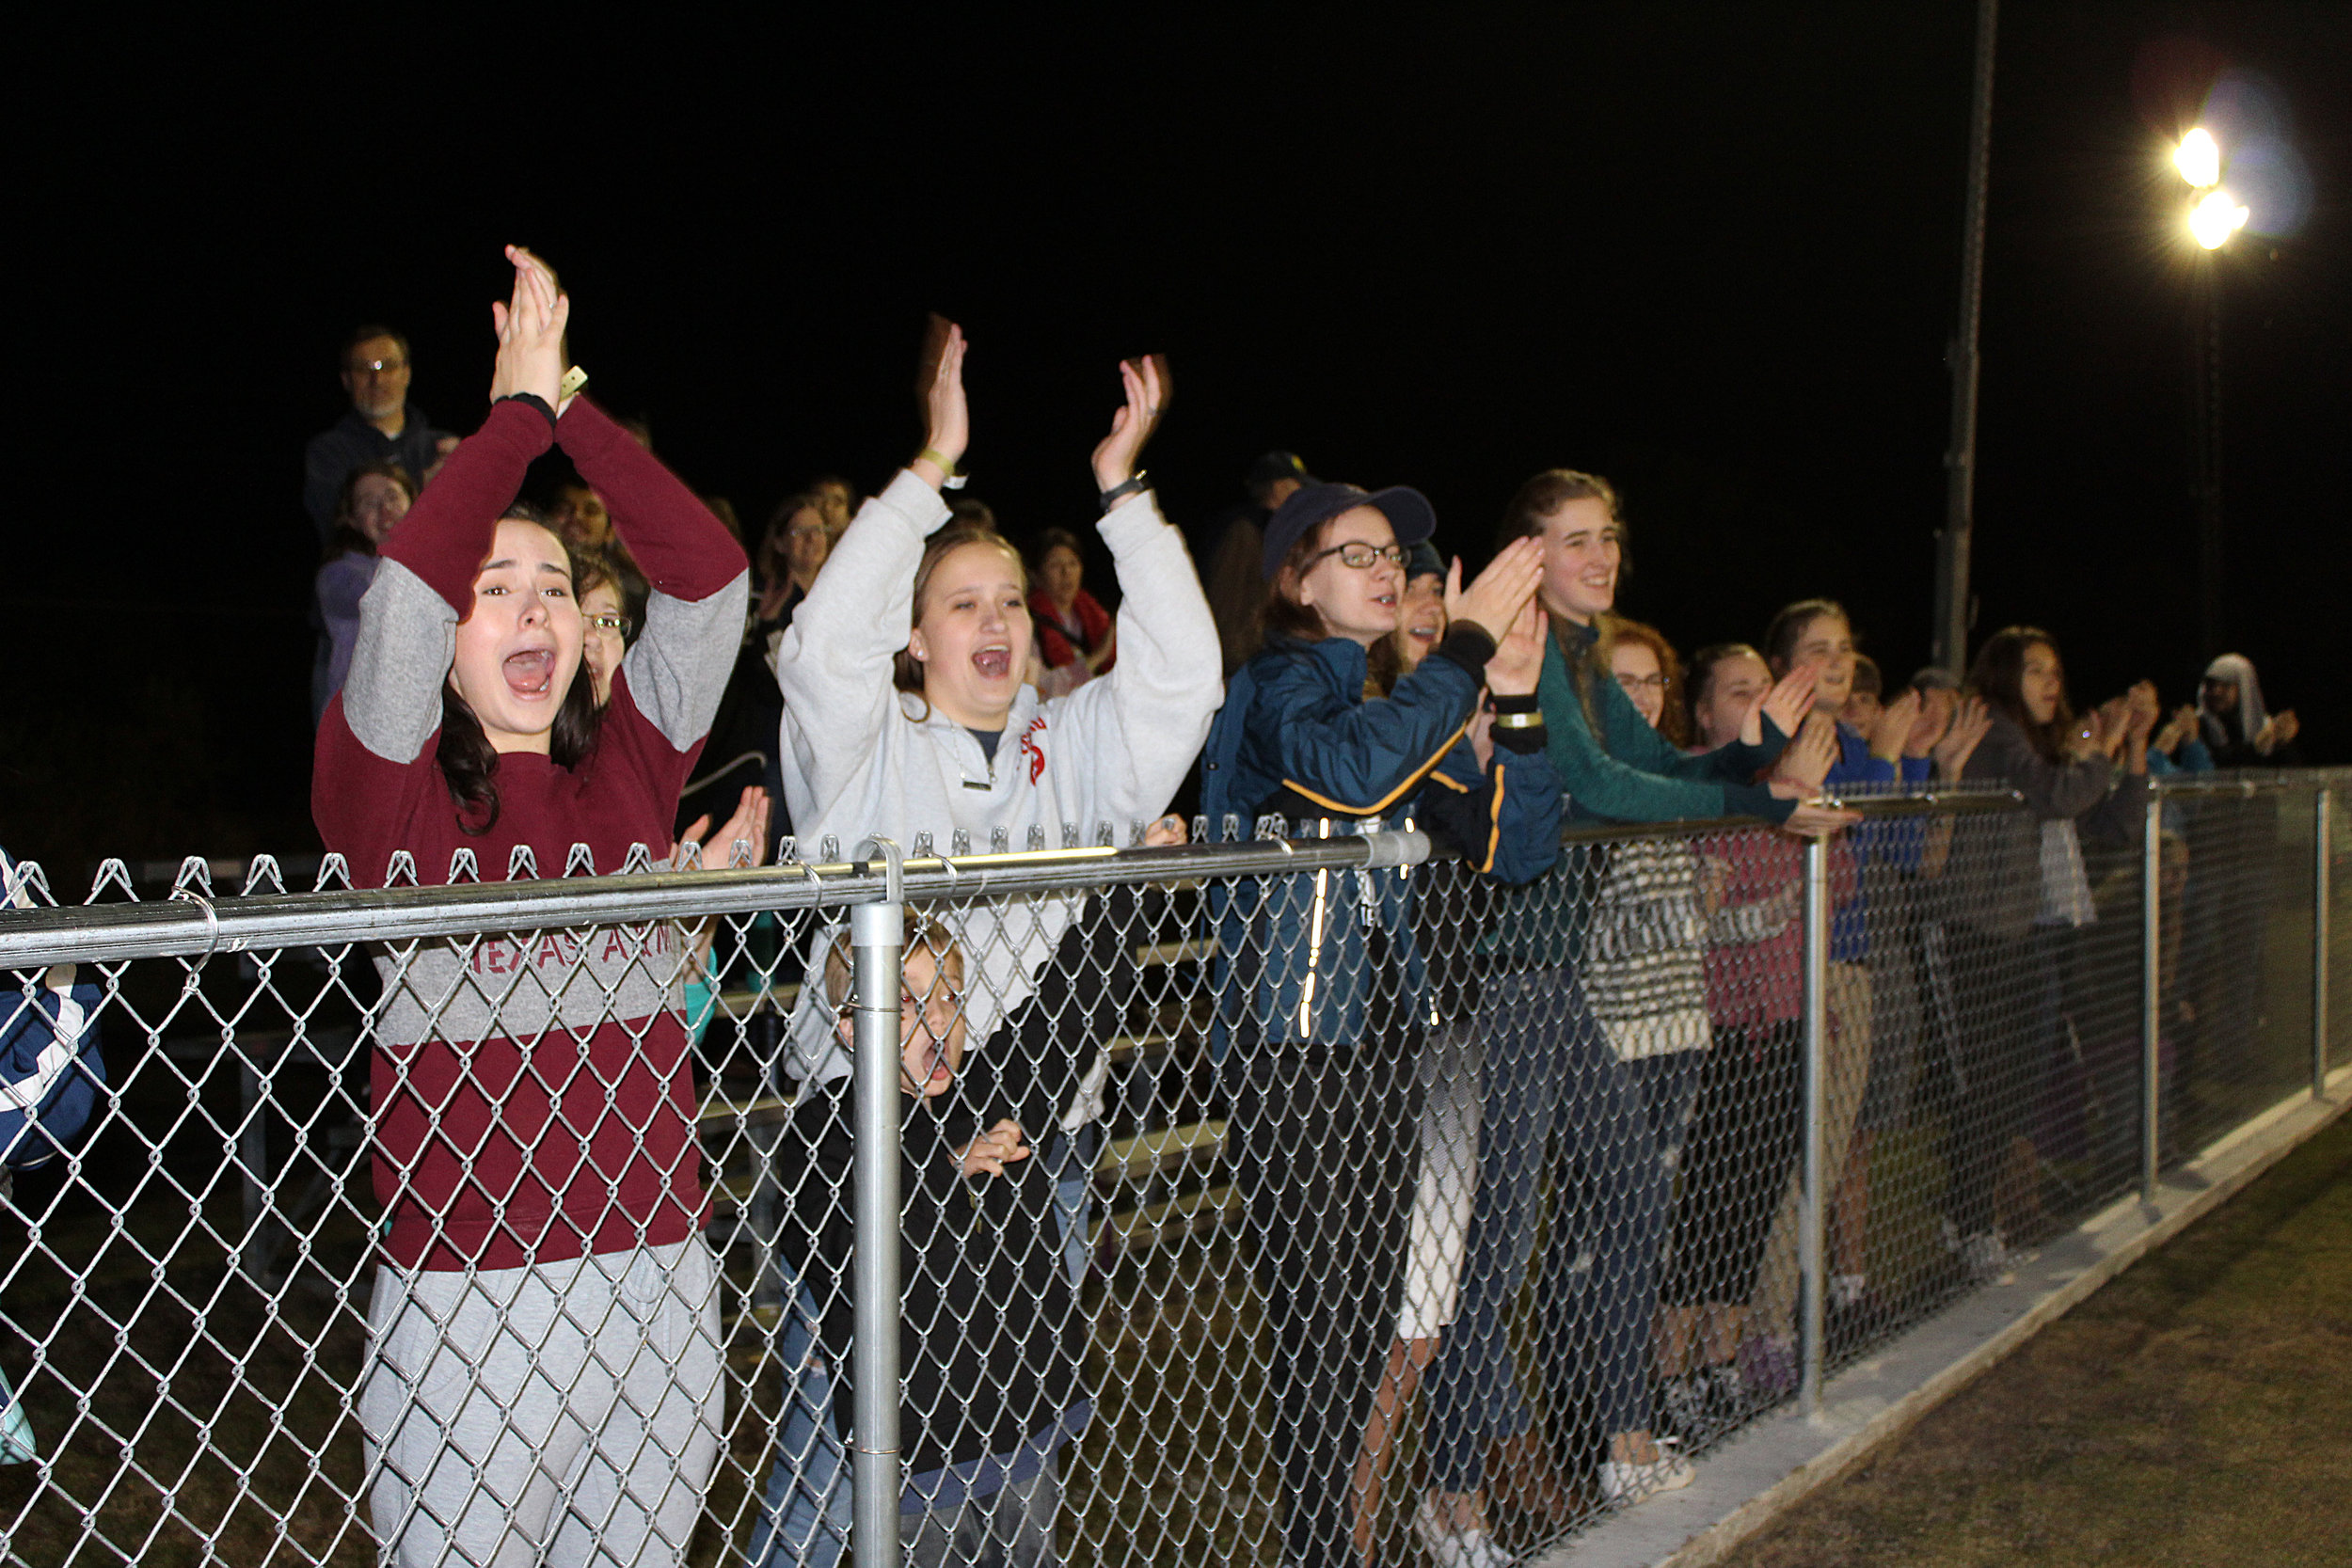 Members of local churches filled the stands to cheer on the Gainesville Tornadoes.